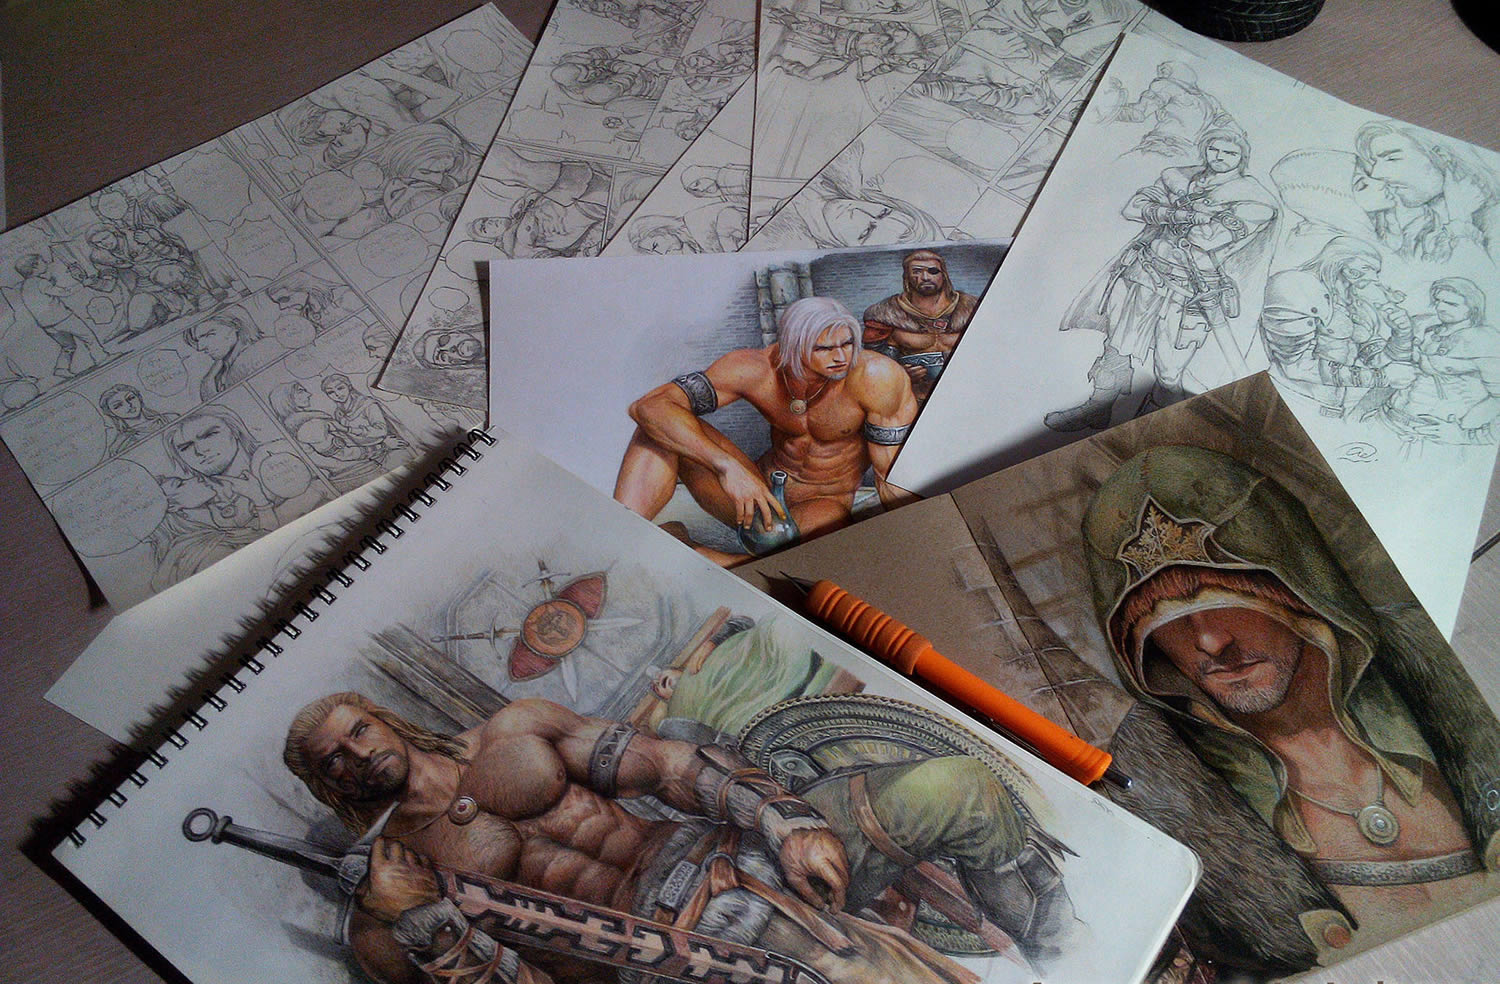 various sketchbook drawings by aenaluck